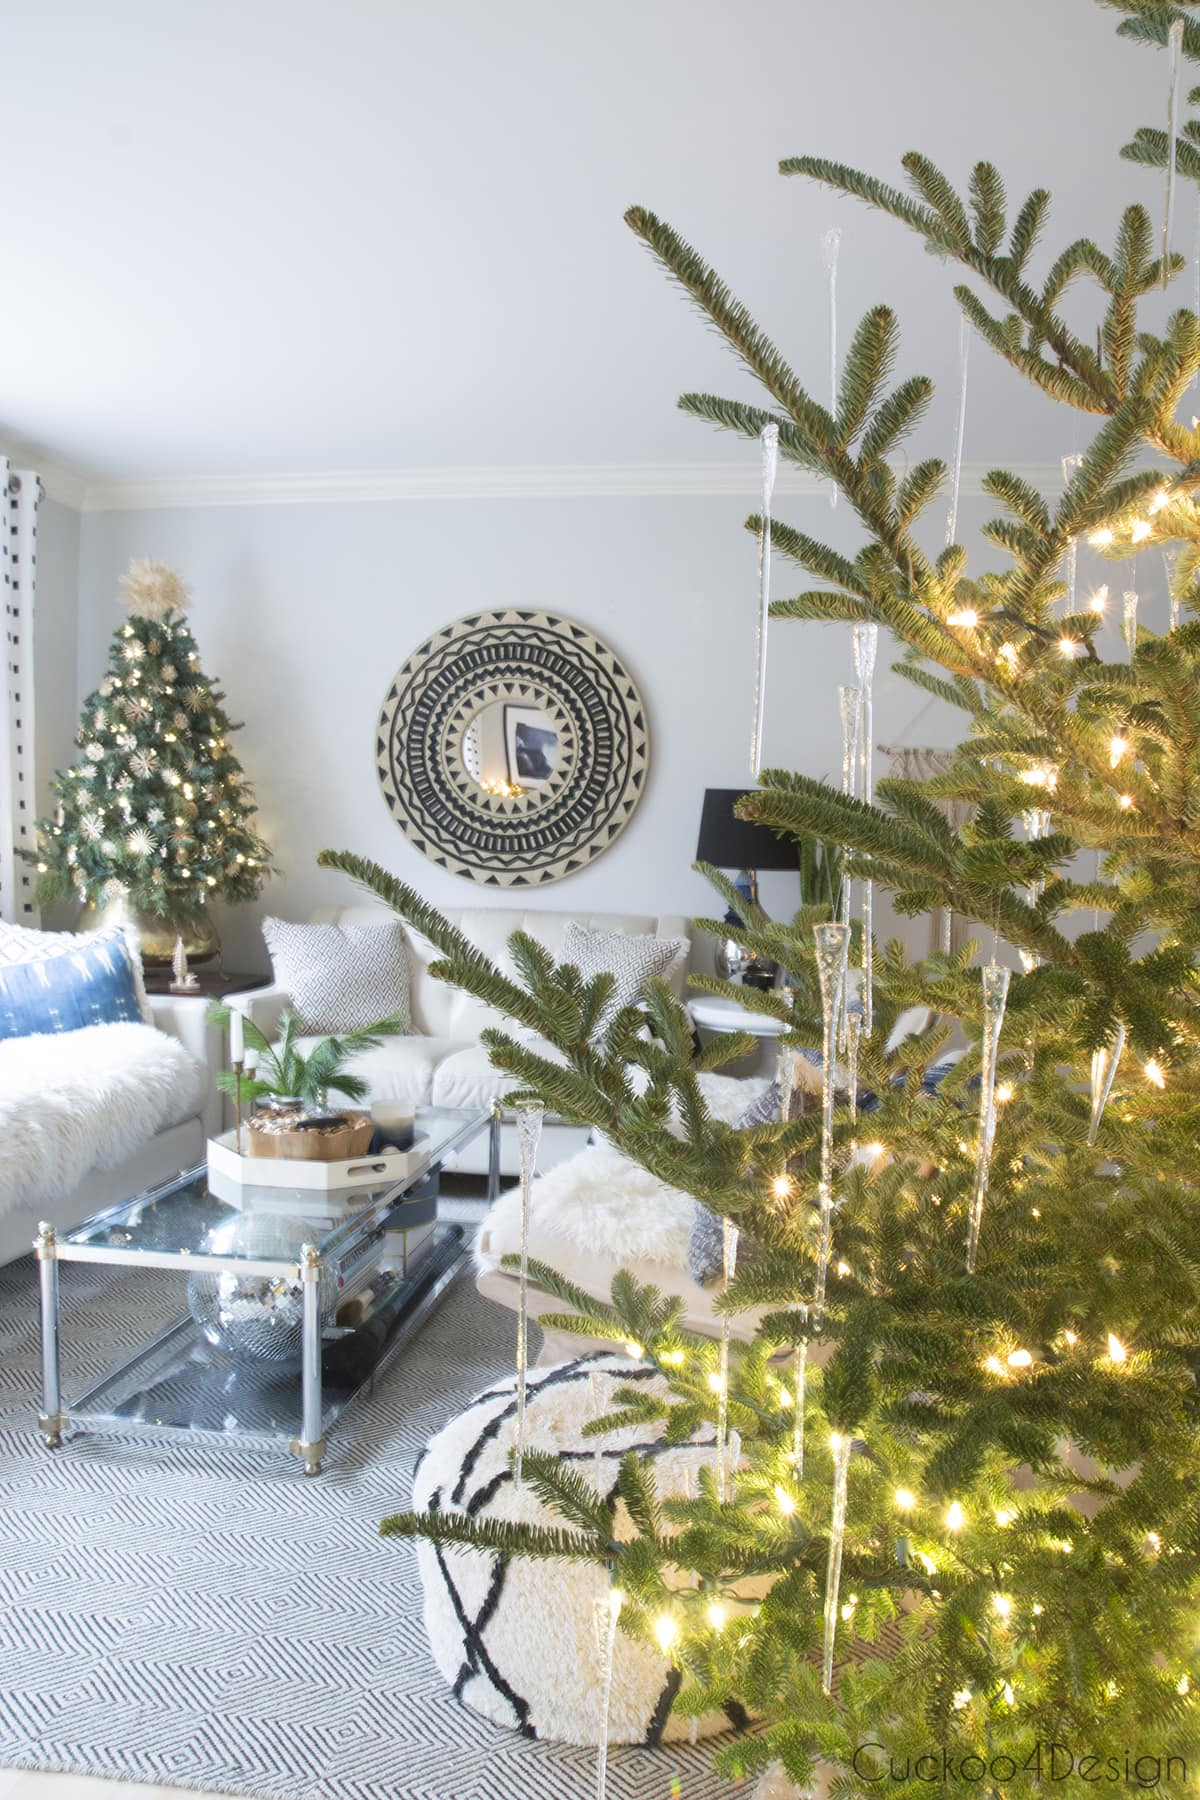 icicles and straw stars as natural Christmas decorations